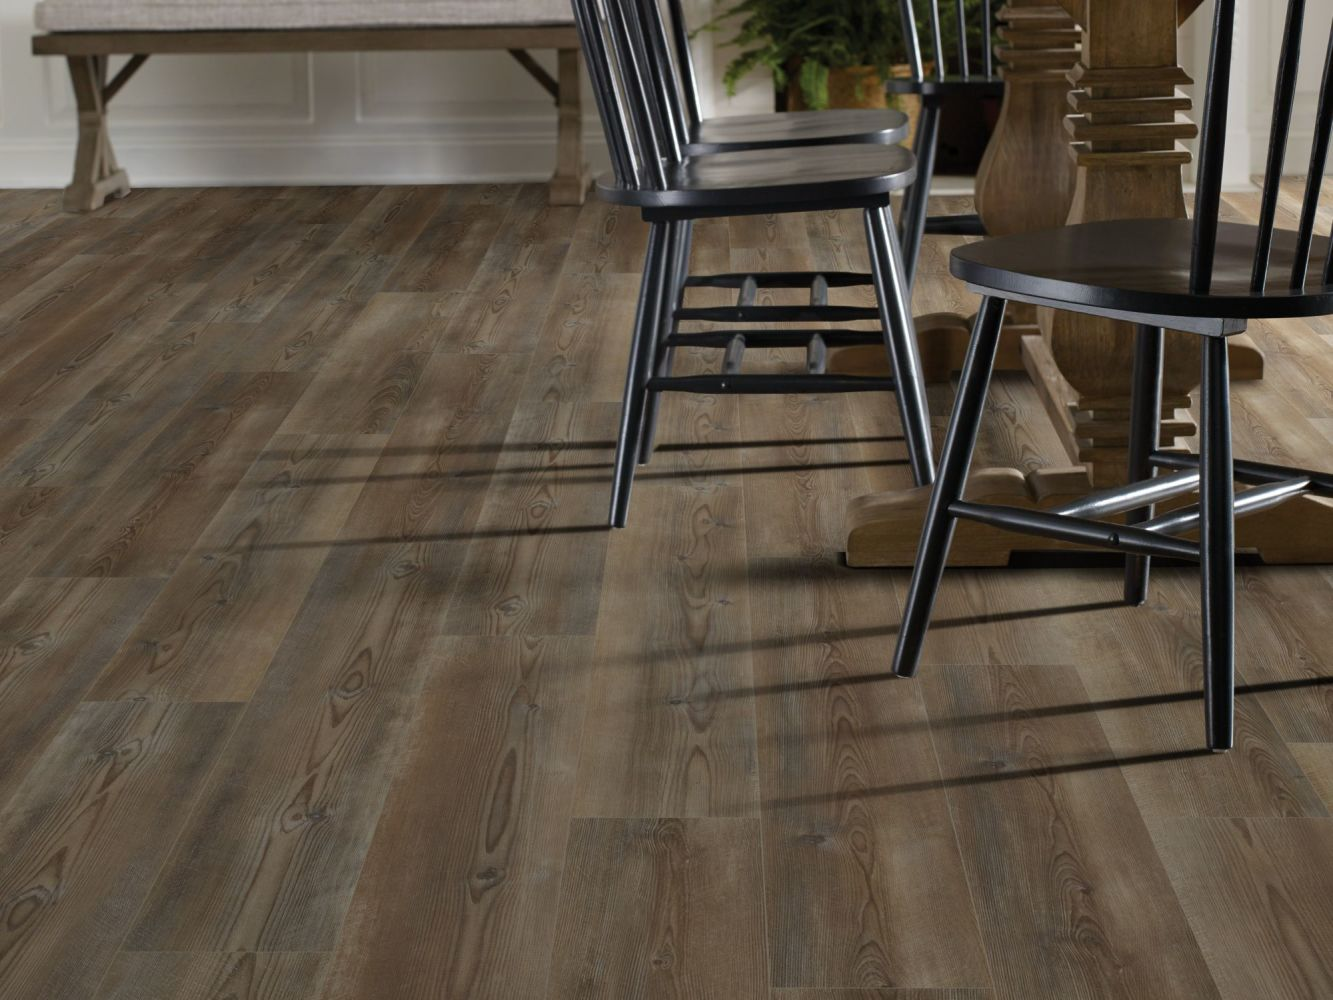 Shaw Floors Resilient Property Solutions Resolute 7″ Plus Ripped Pine 07047_VE278